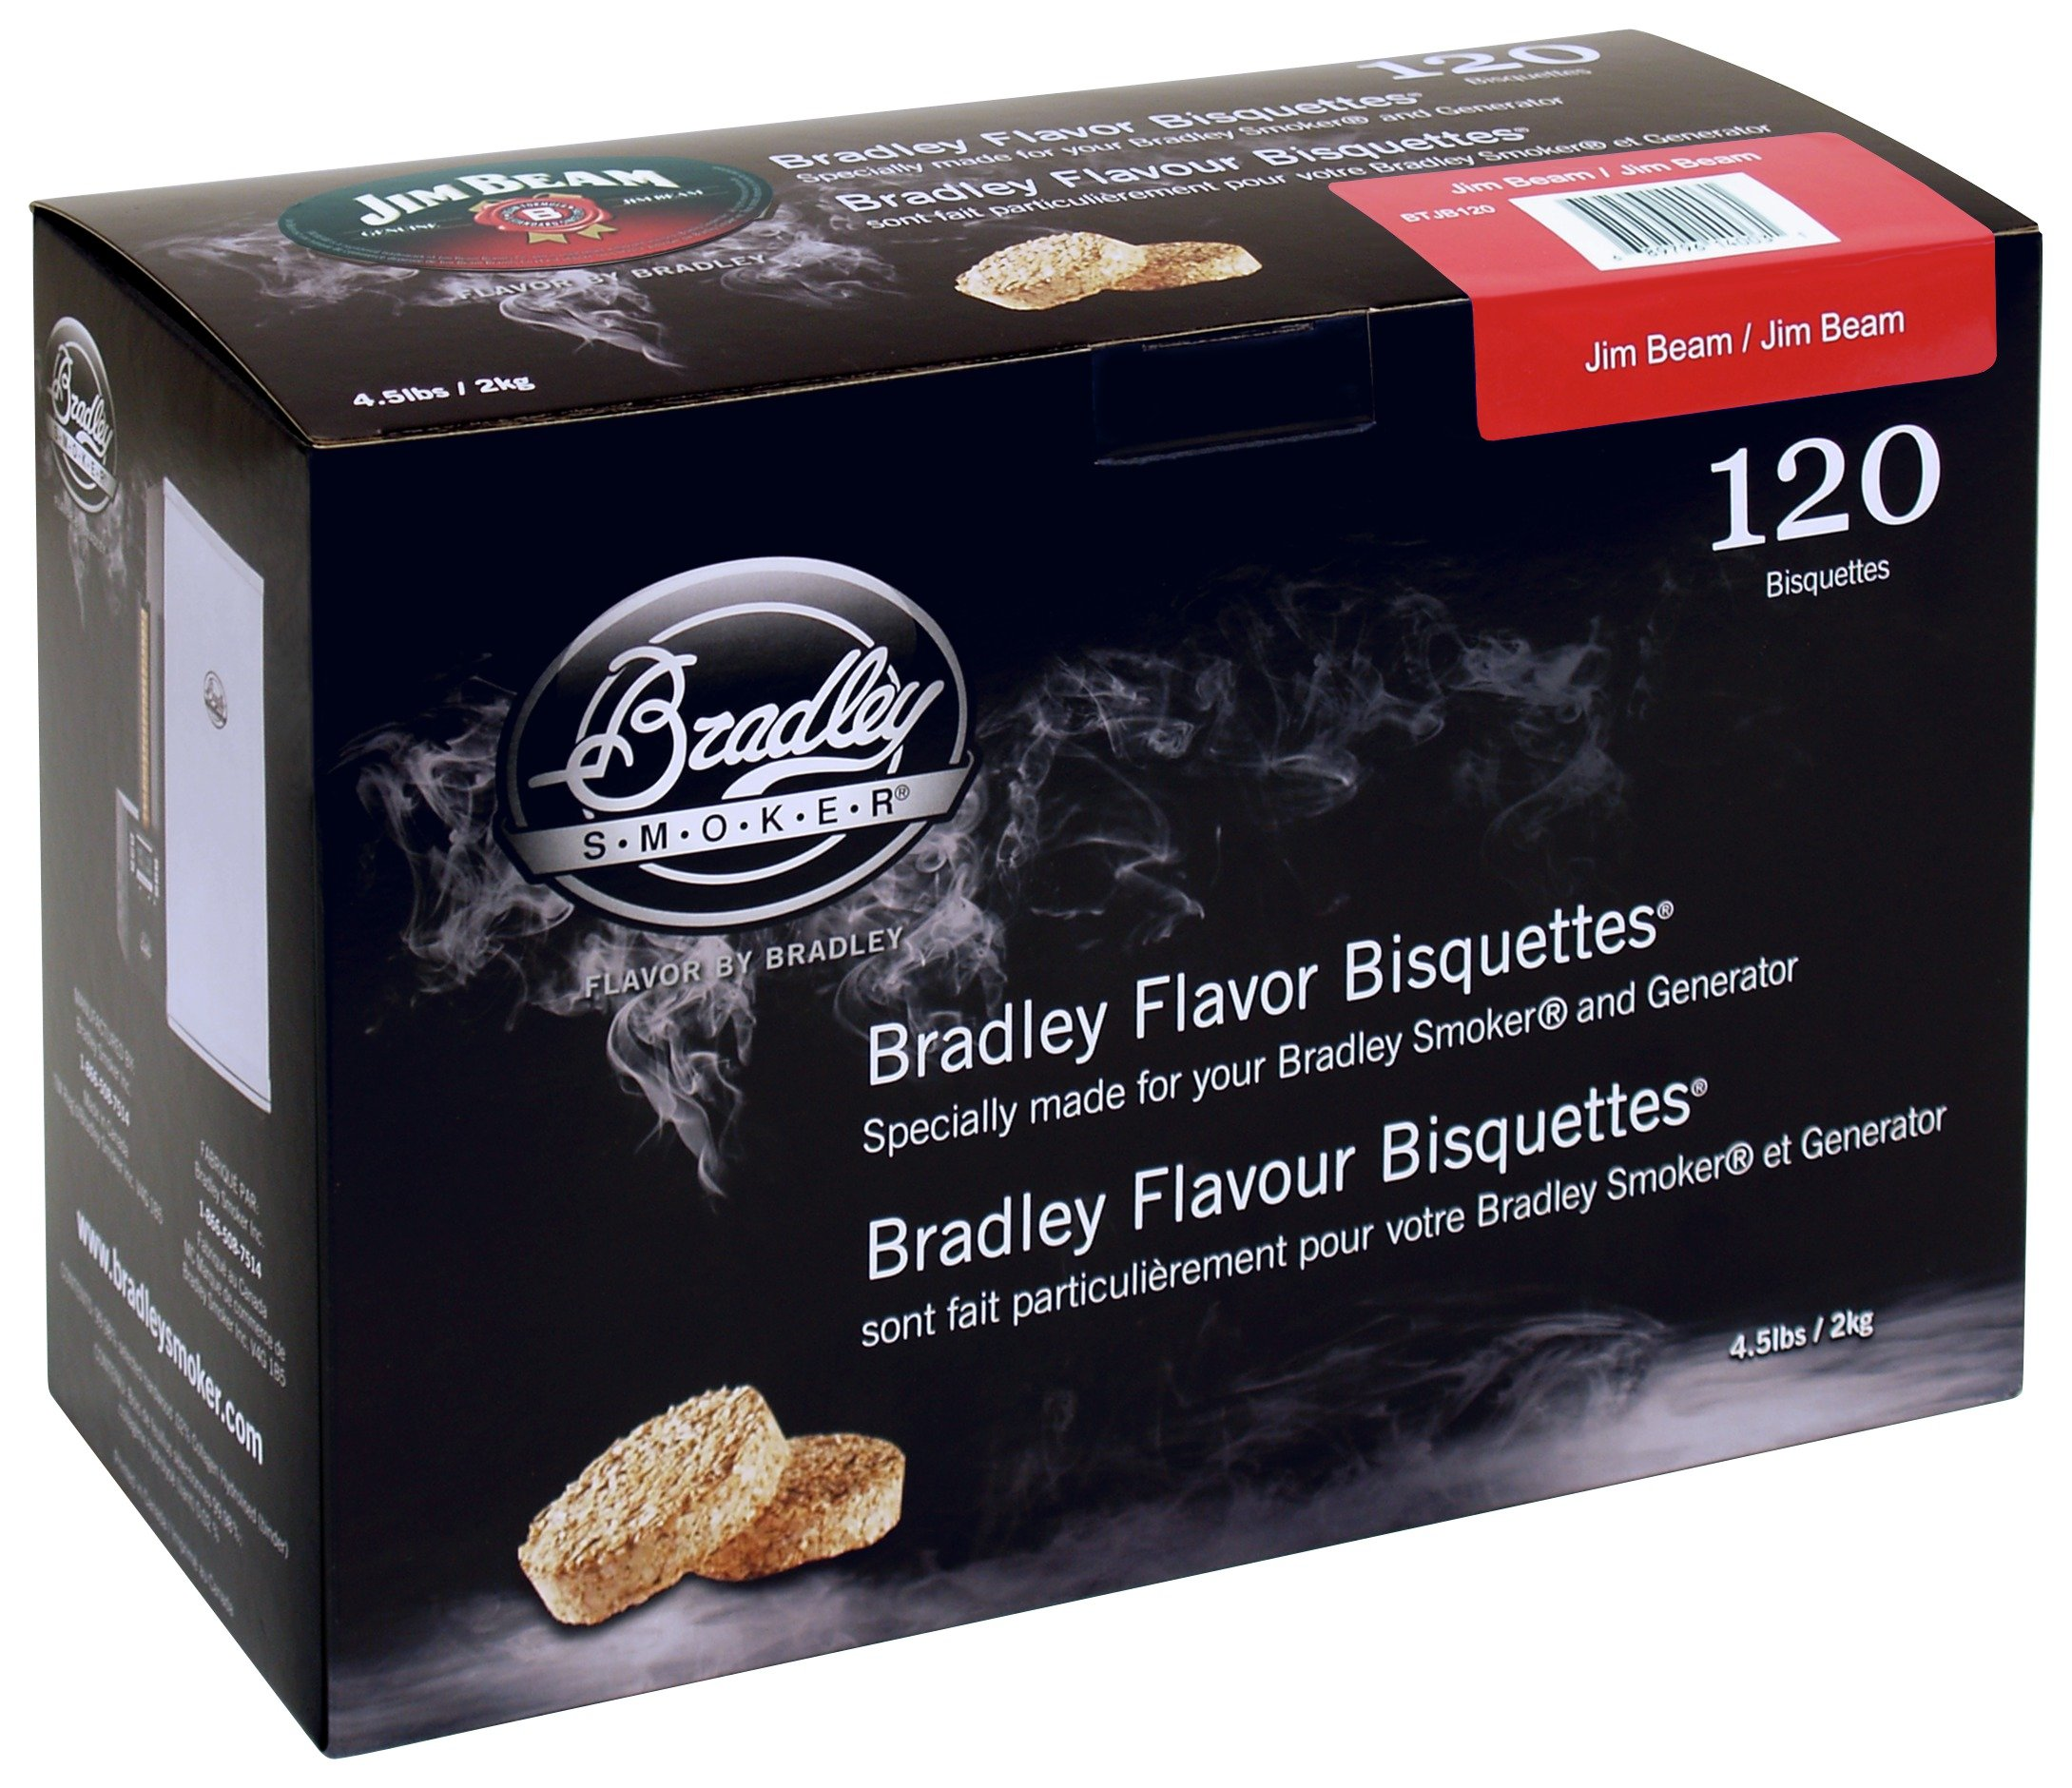 Image of Bradley Smoker - Jim Beam Bisquettes - 120 Pack